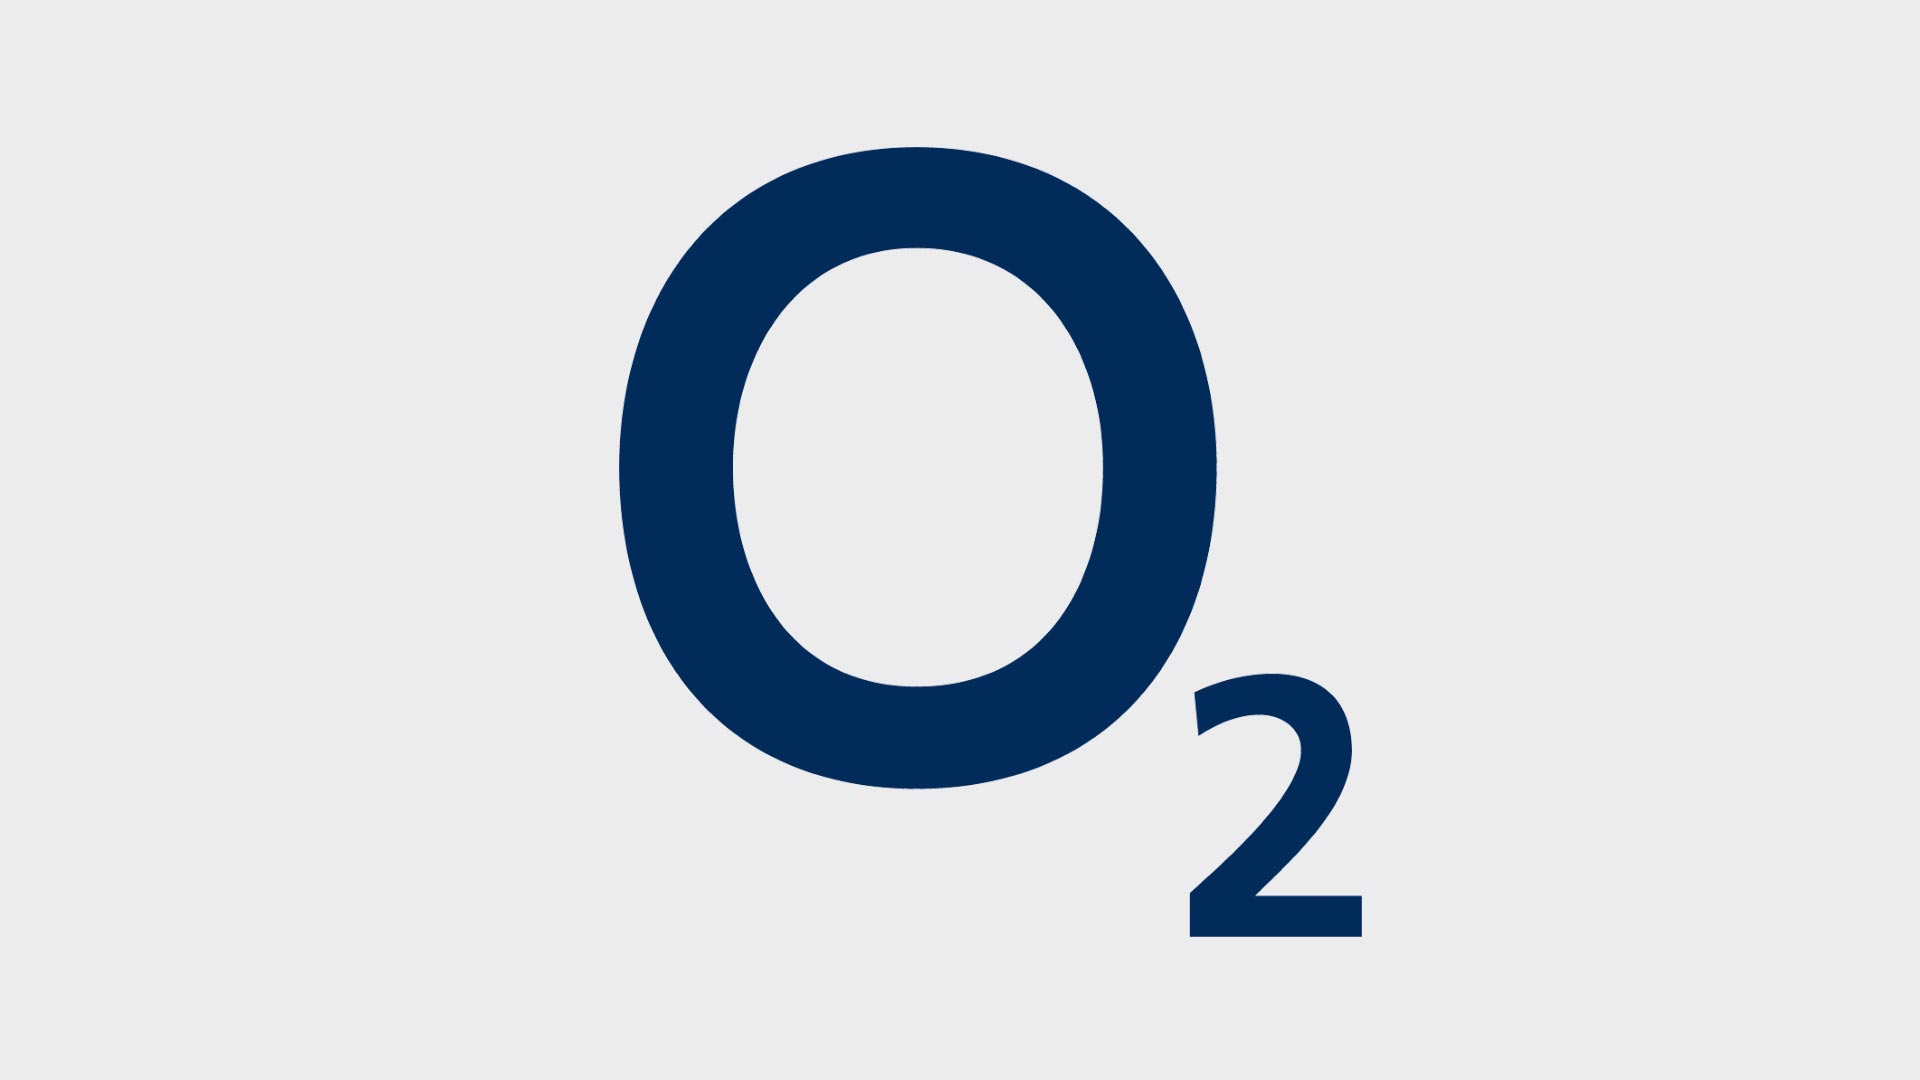 Helping O2 leaders lead in difficult times